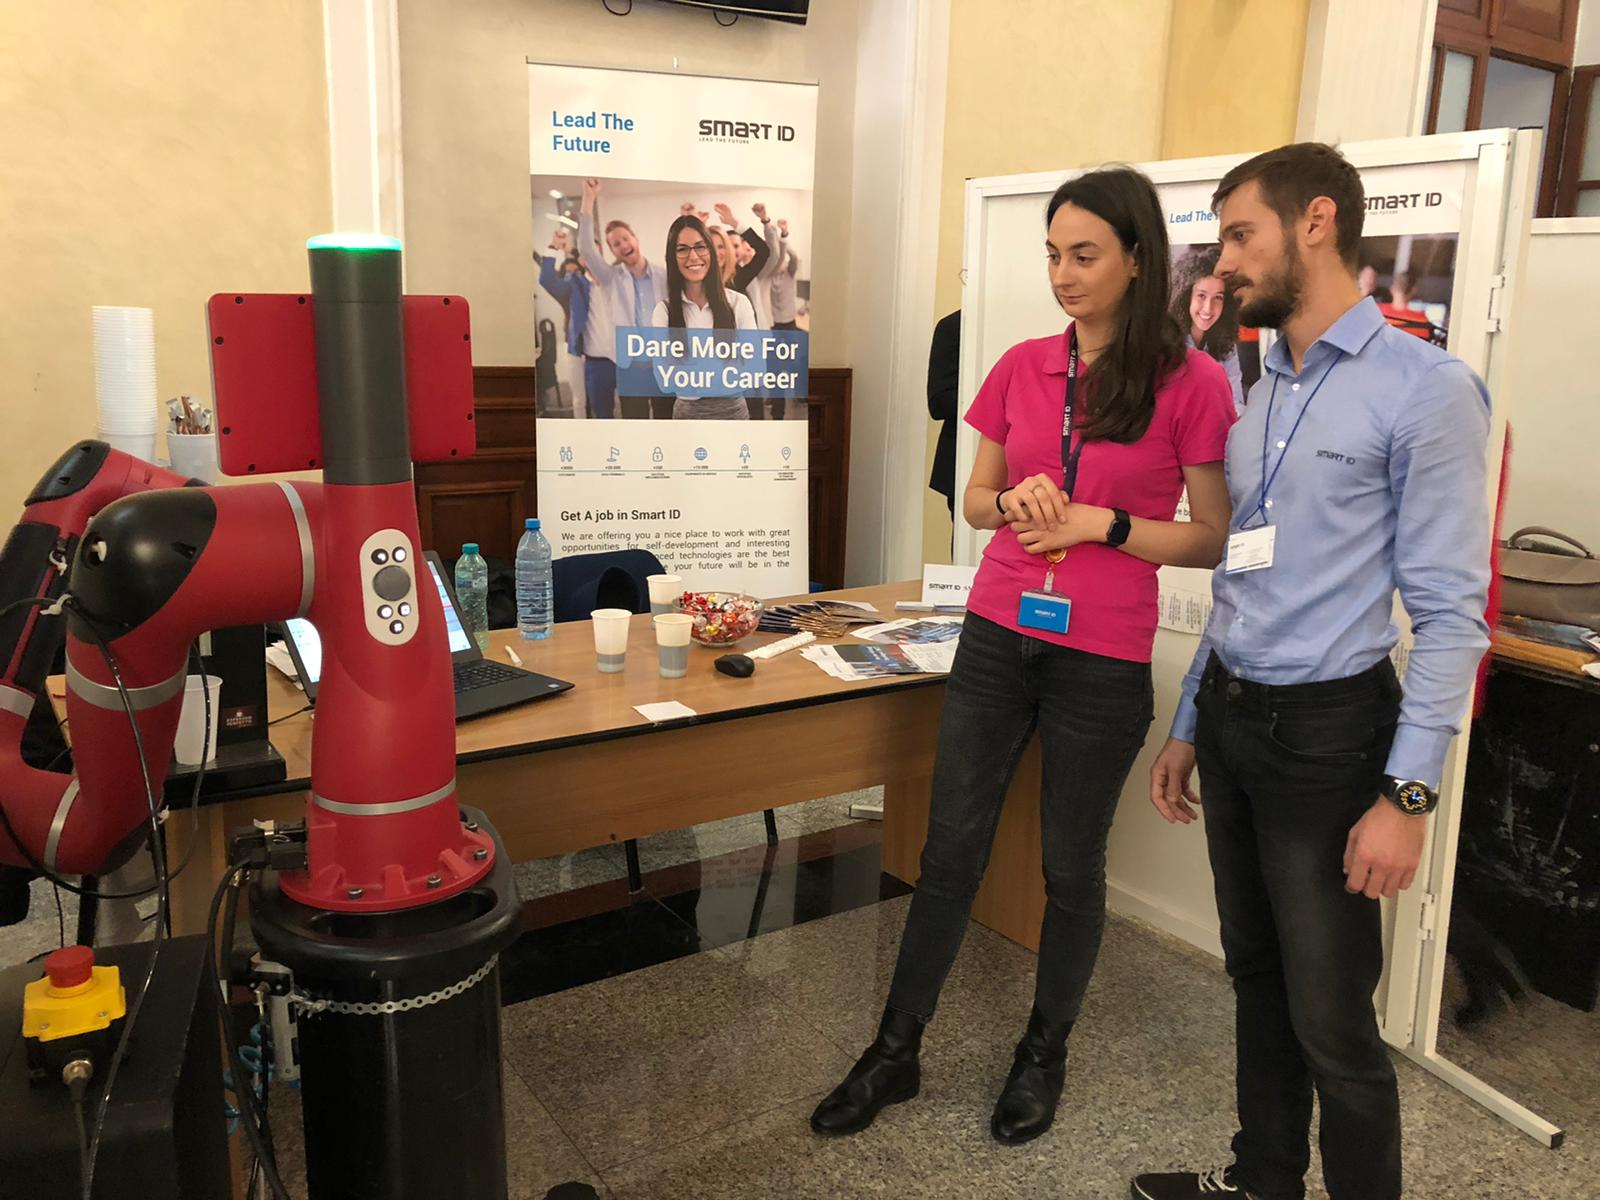 SmartID Career Day in Cariova 2019